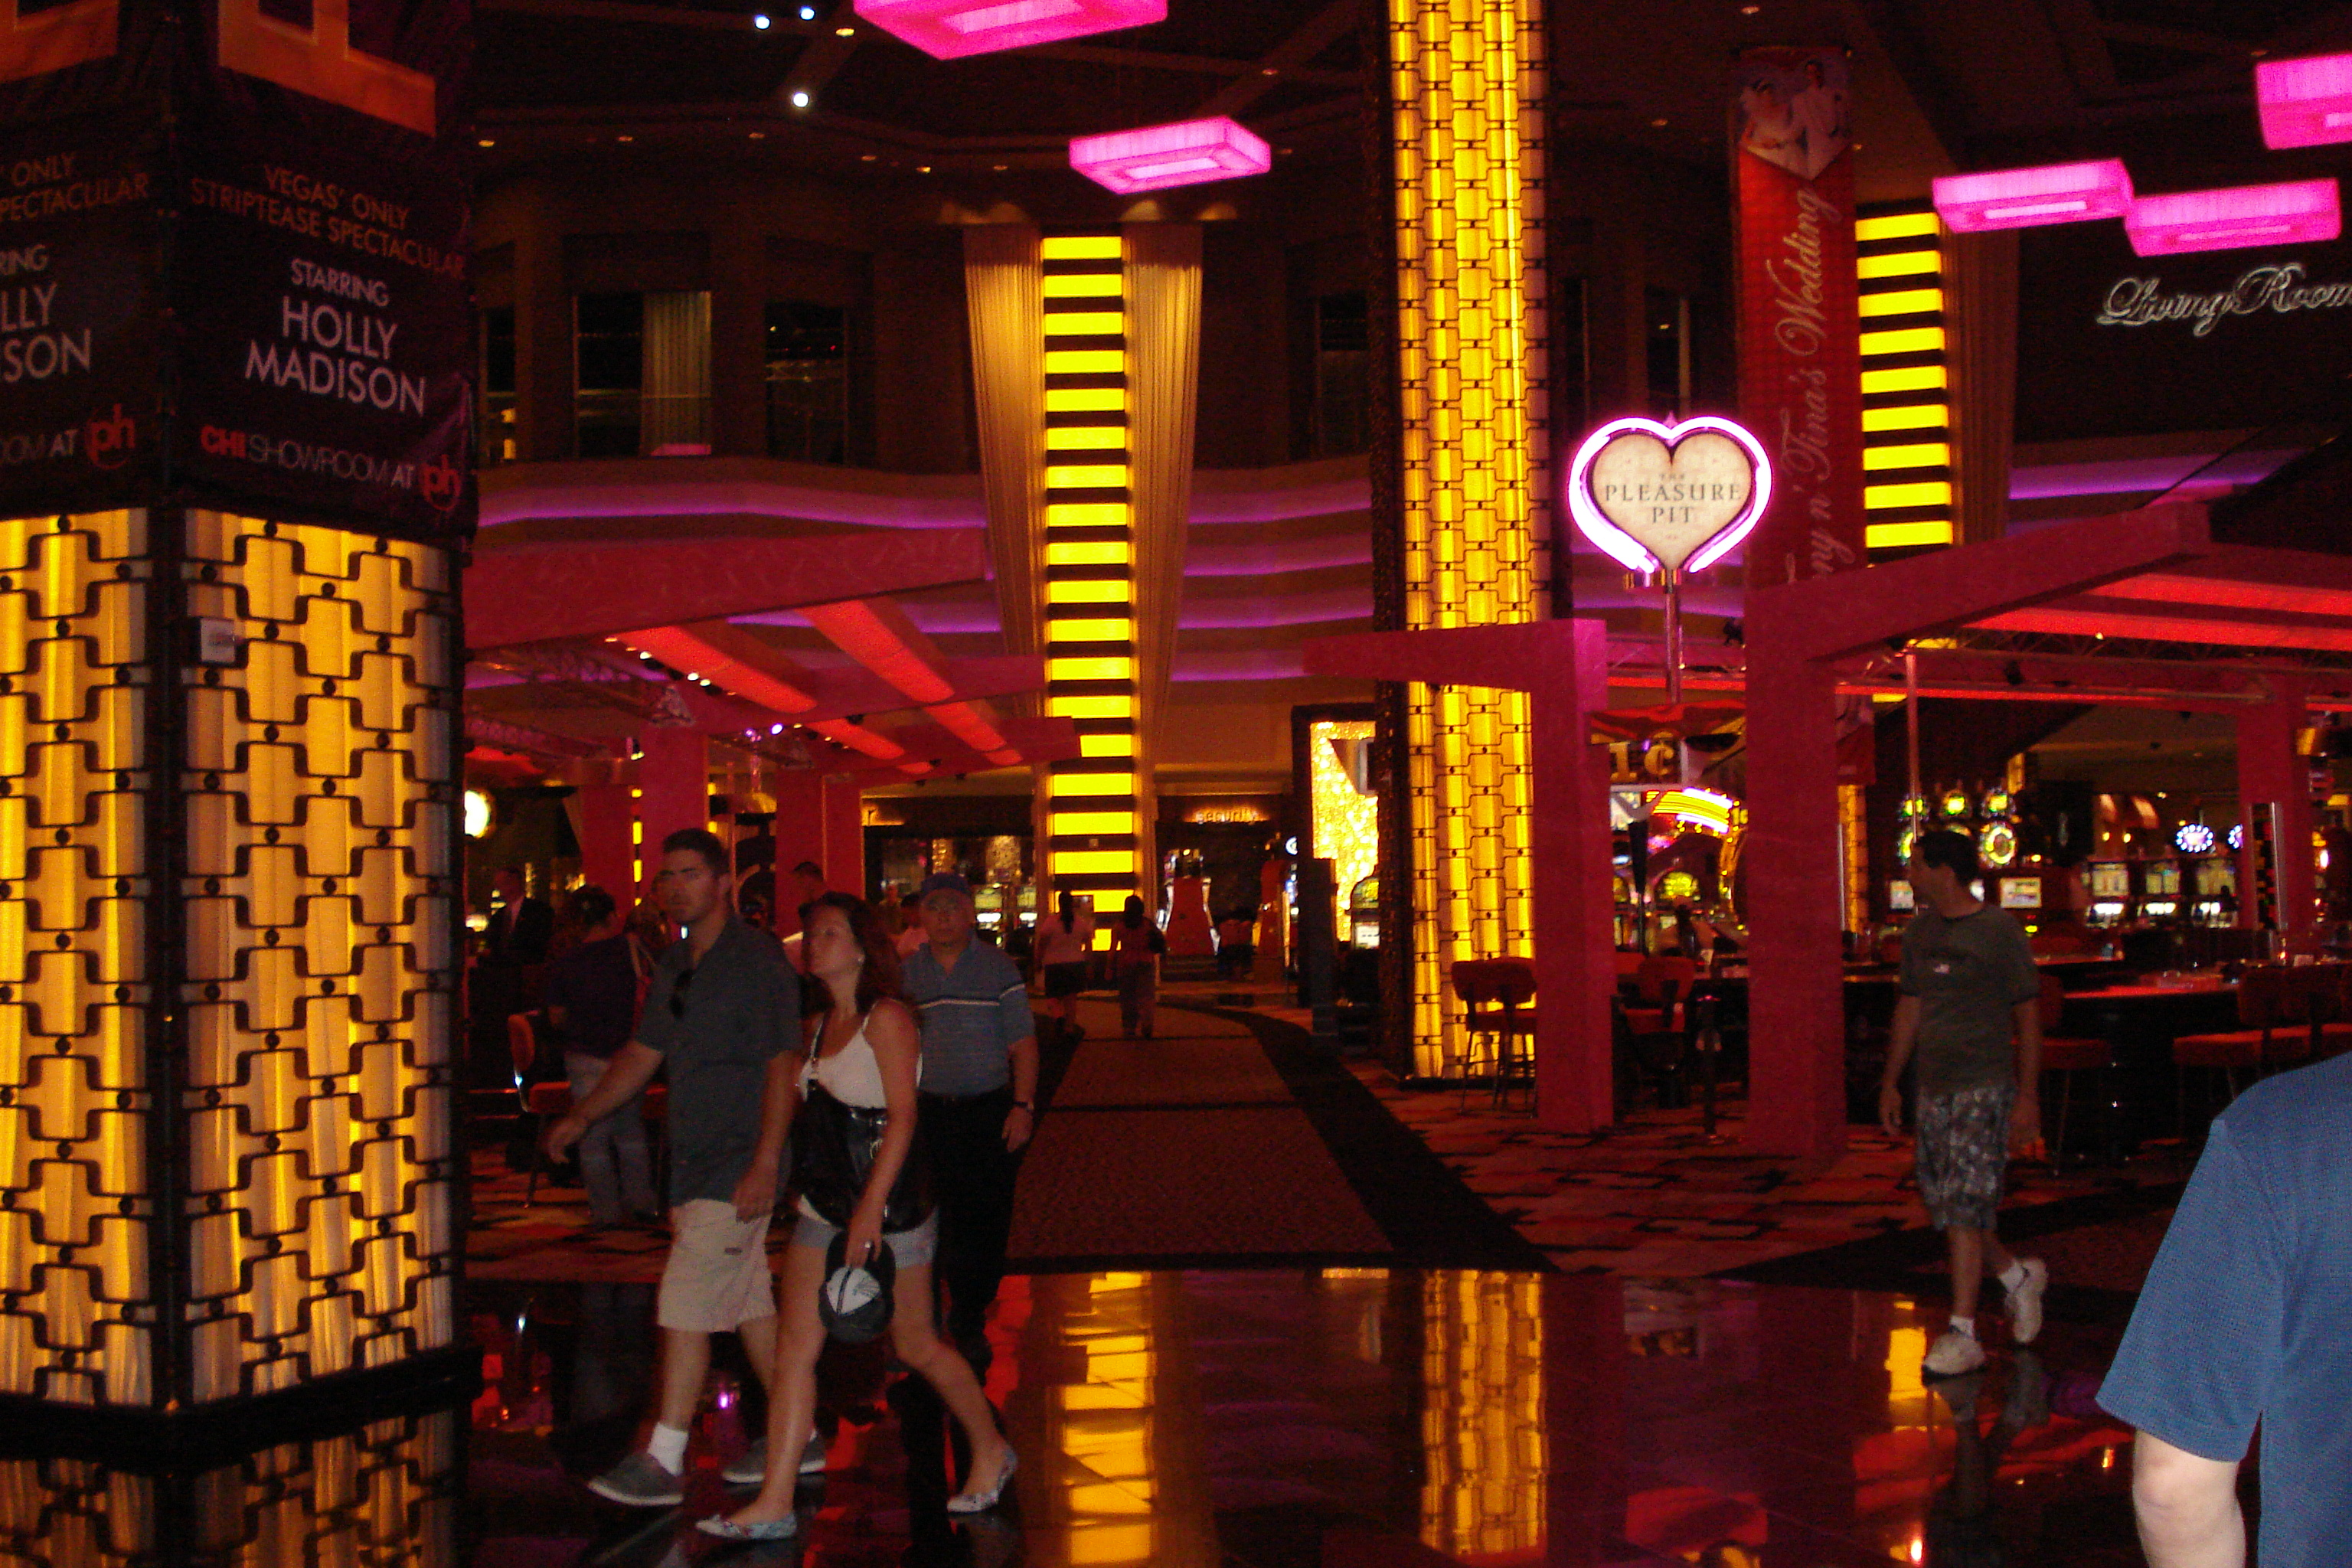 Casino Joe Fun Casino Birmingham